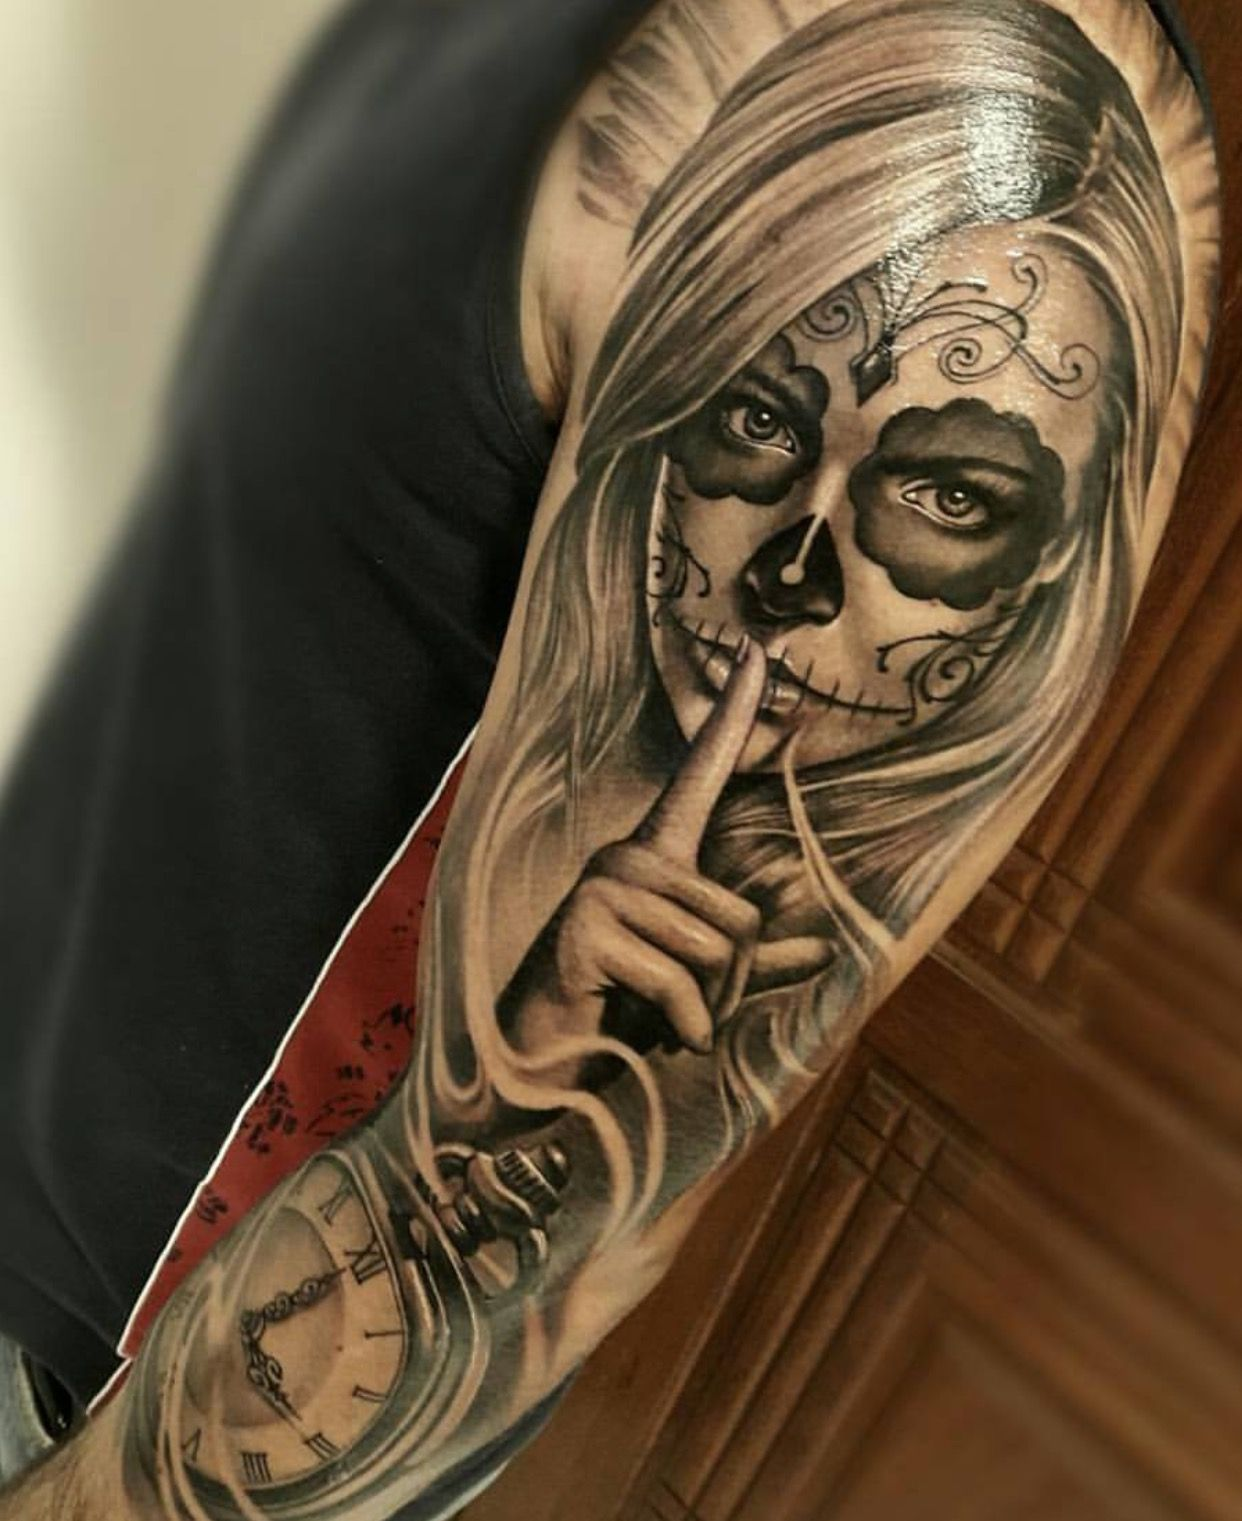 Day Of The Dead Tattoo Sleeve This Would Look Cool But I Would Want